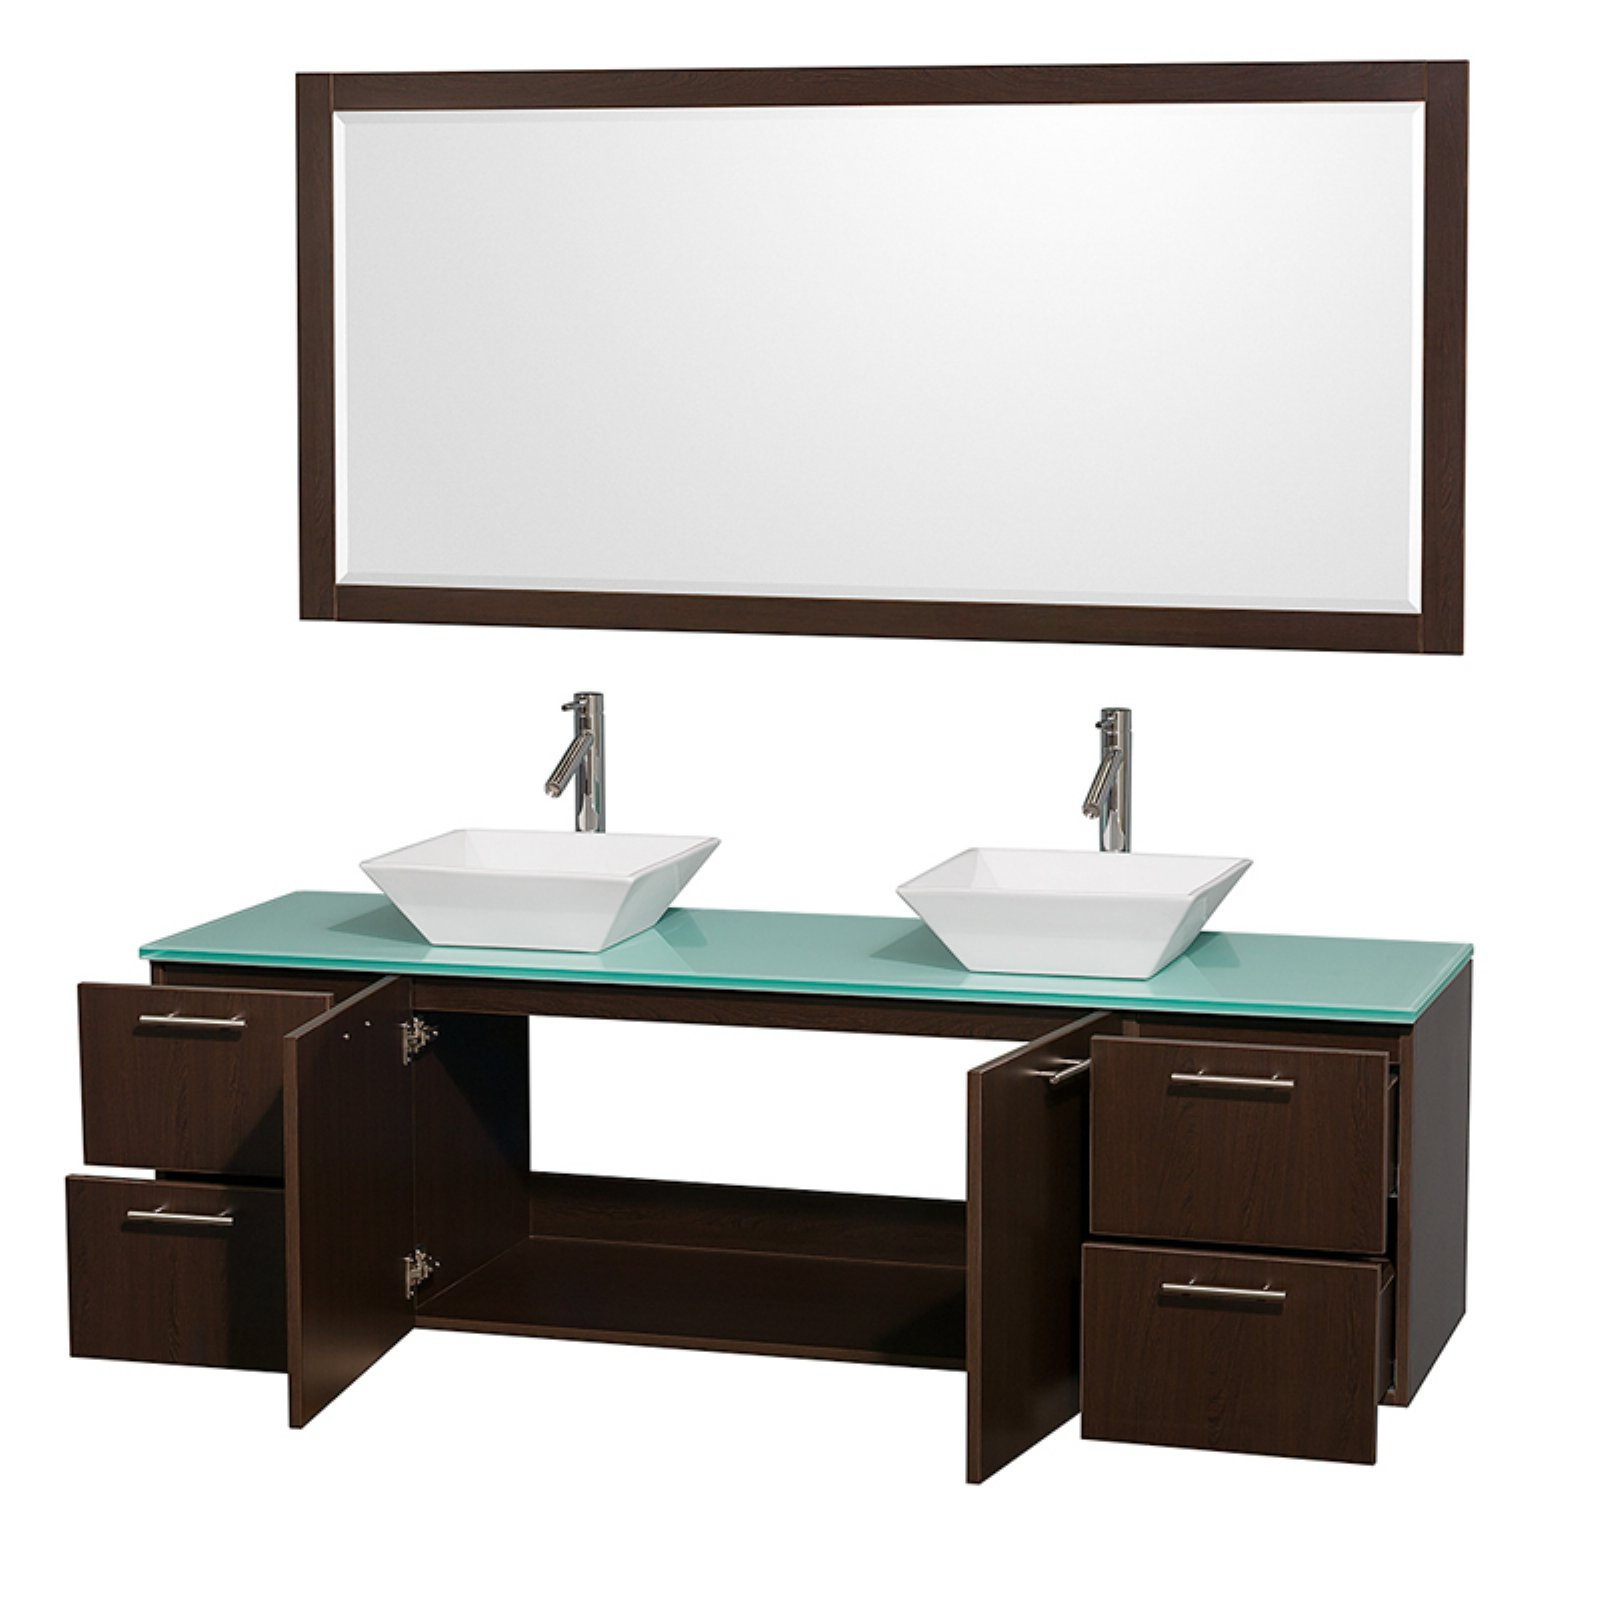 Wyndham Collection Amare 72 Inch Double Bathroom Vanity In Espresso, Green Glass Countertop, Arista Black Granite Sinks, And 70 Inch Mirror With Arista Ceramic Garden Stools (View 19 of 25)